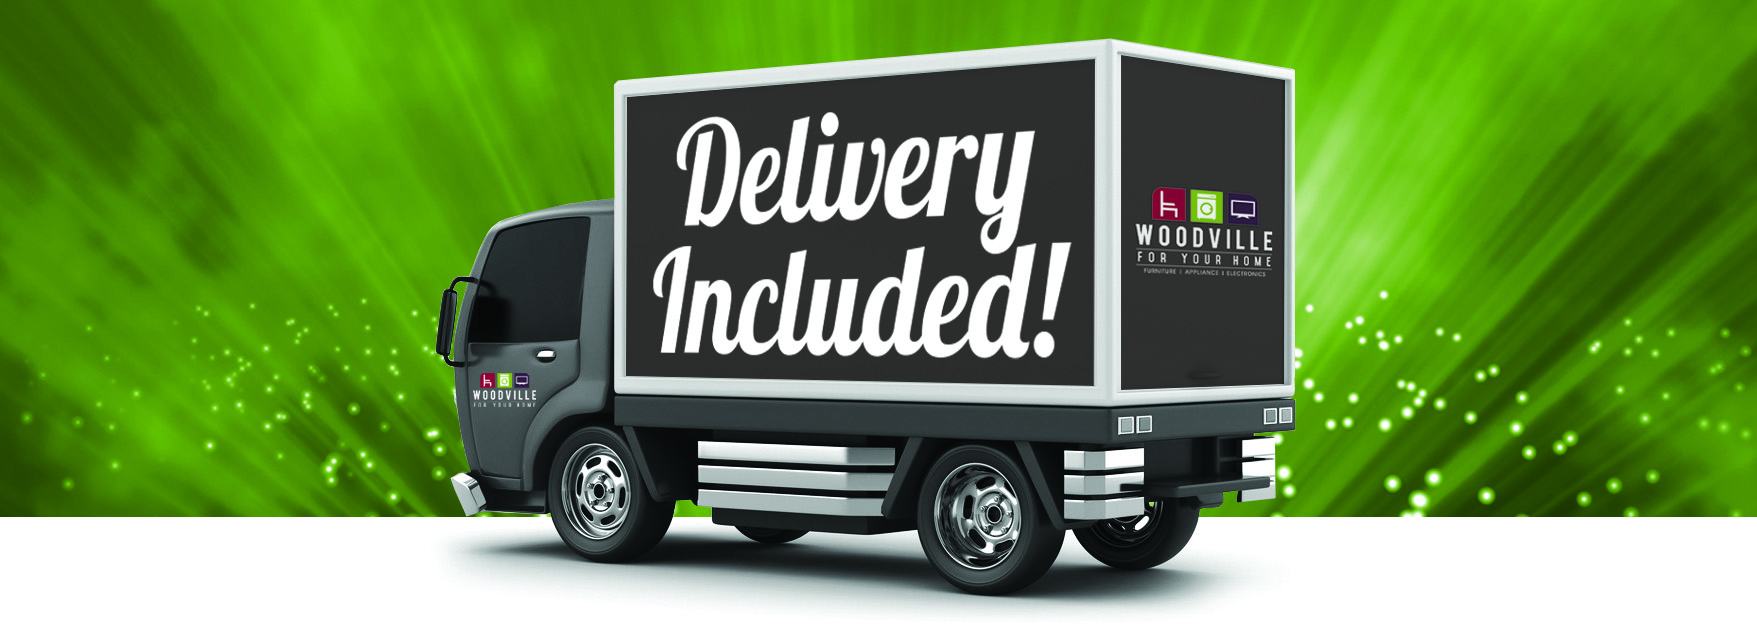 Delivery Included